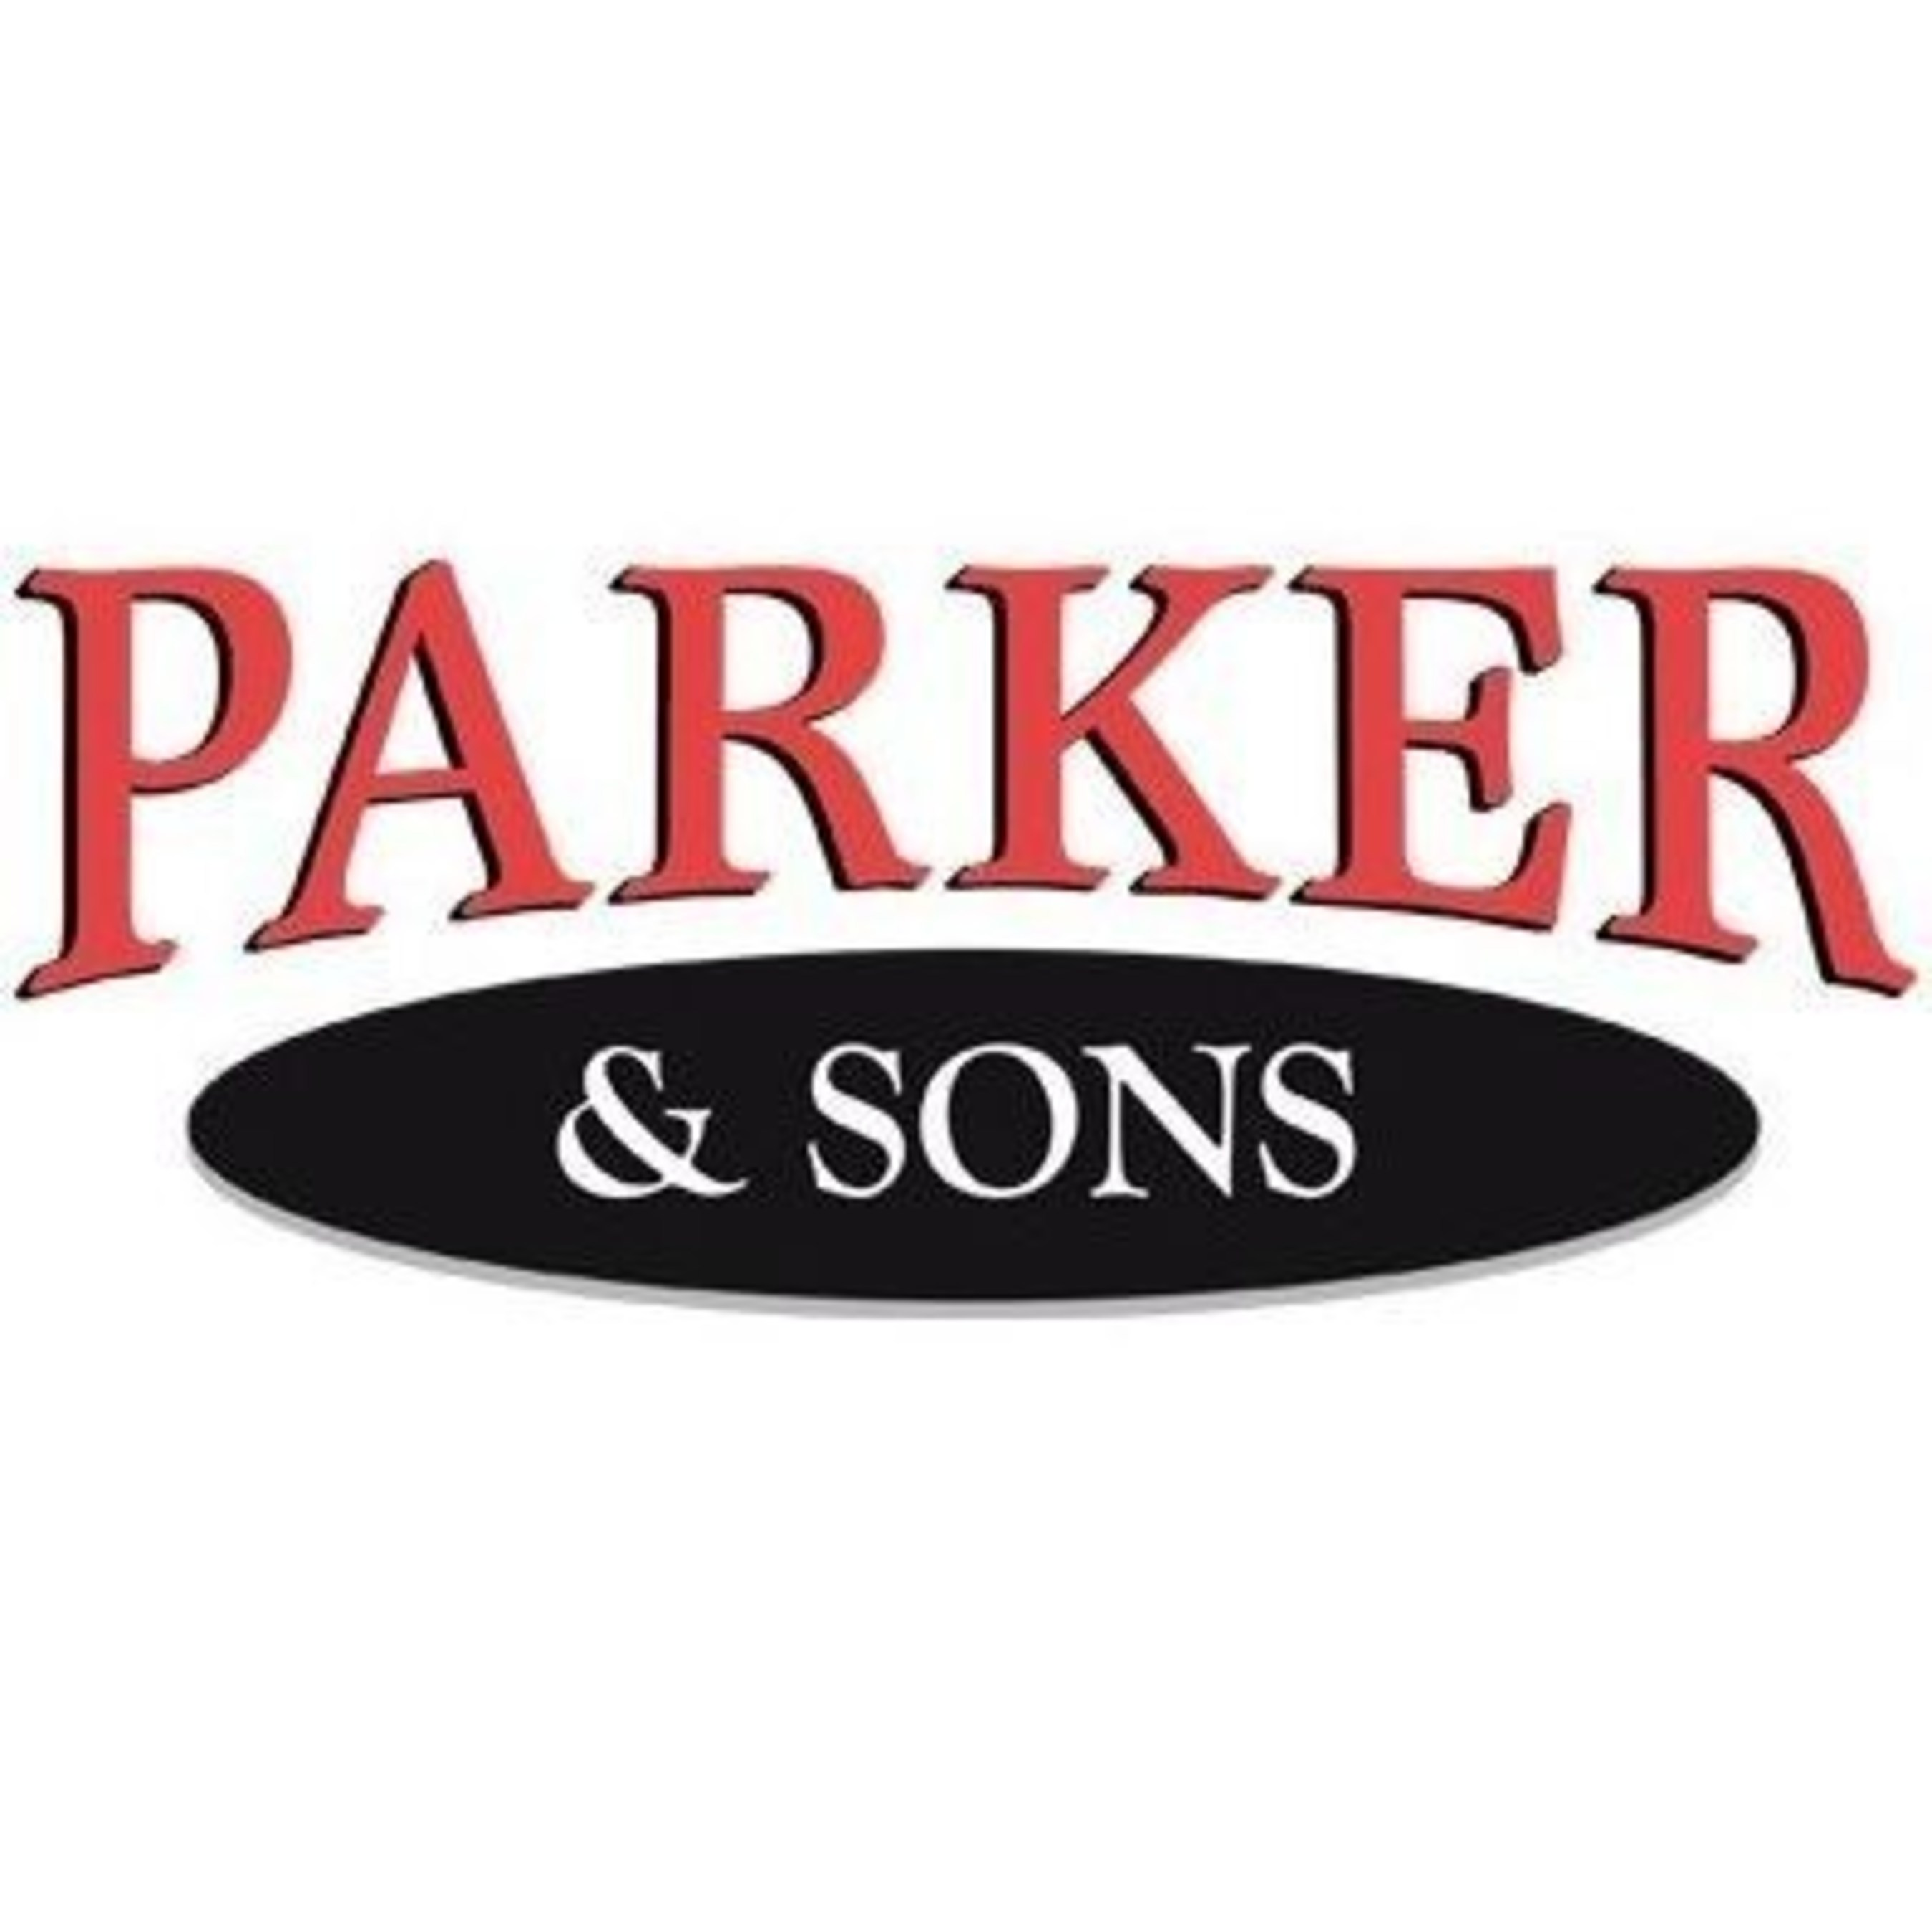 Parker & Sons Supports Arizona Public Service's Energy Conservation Plan